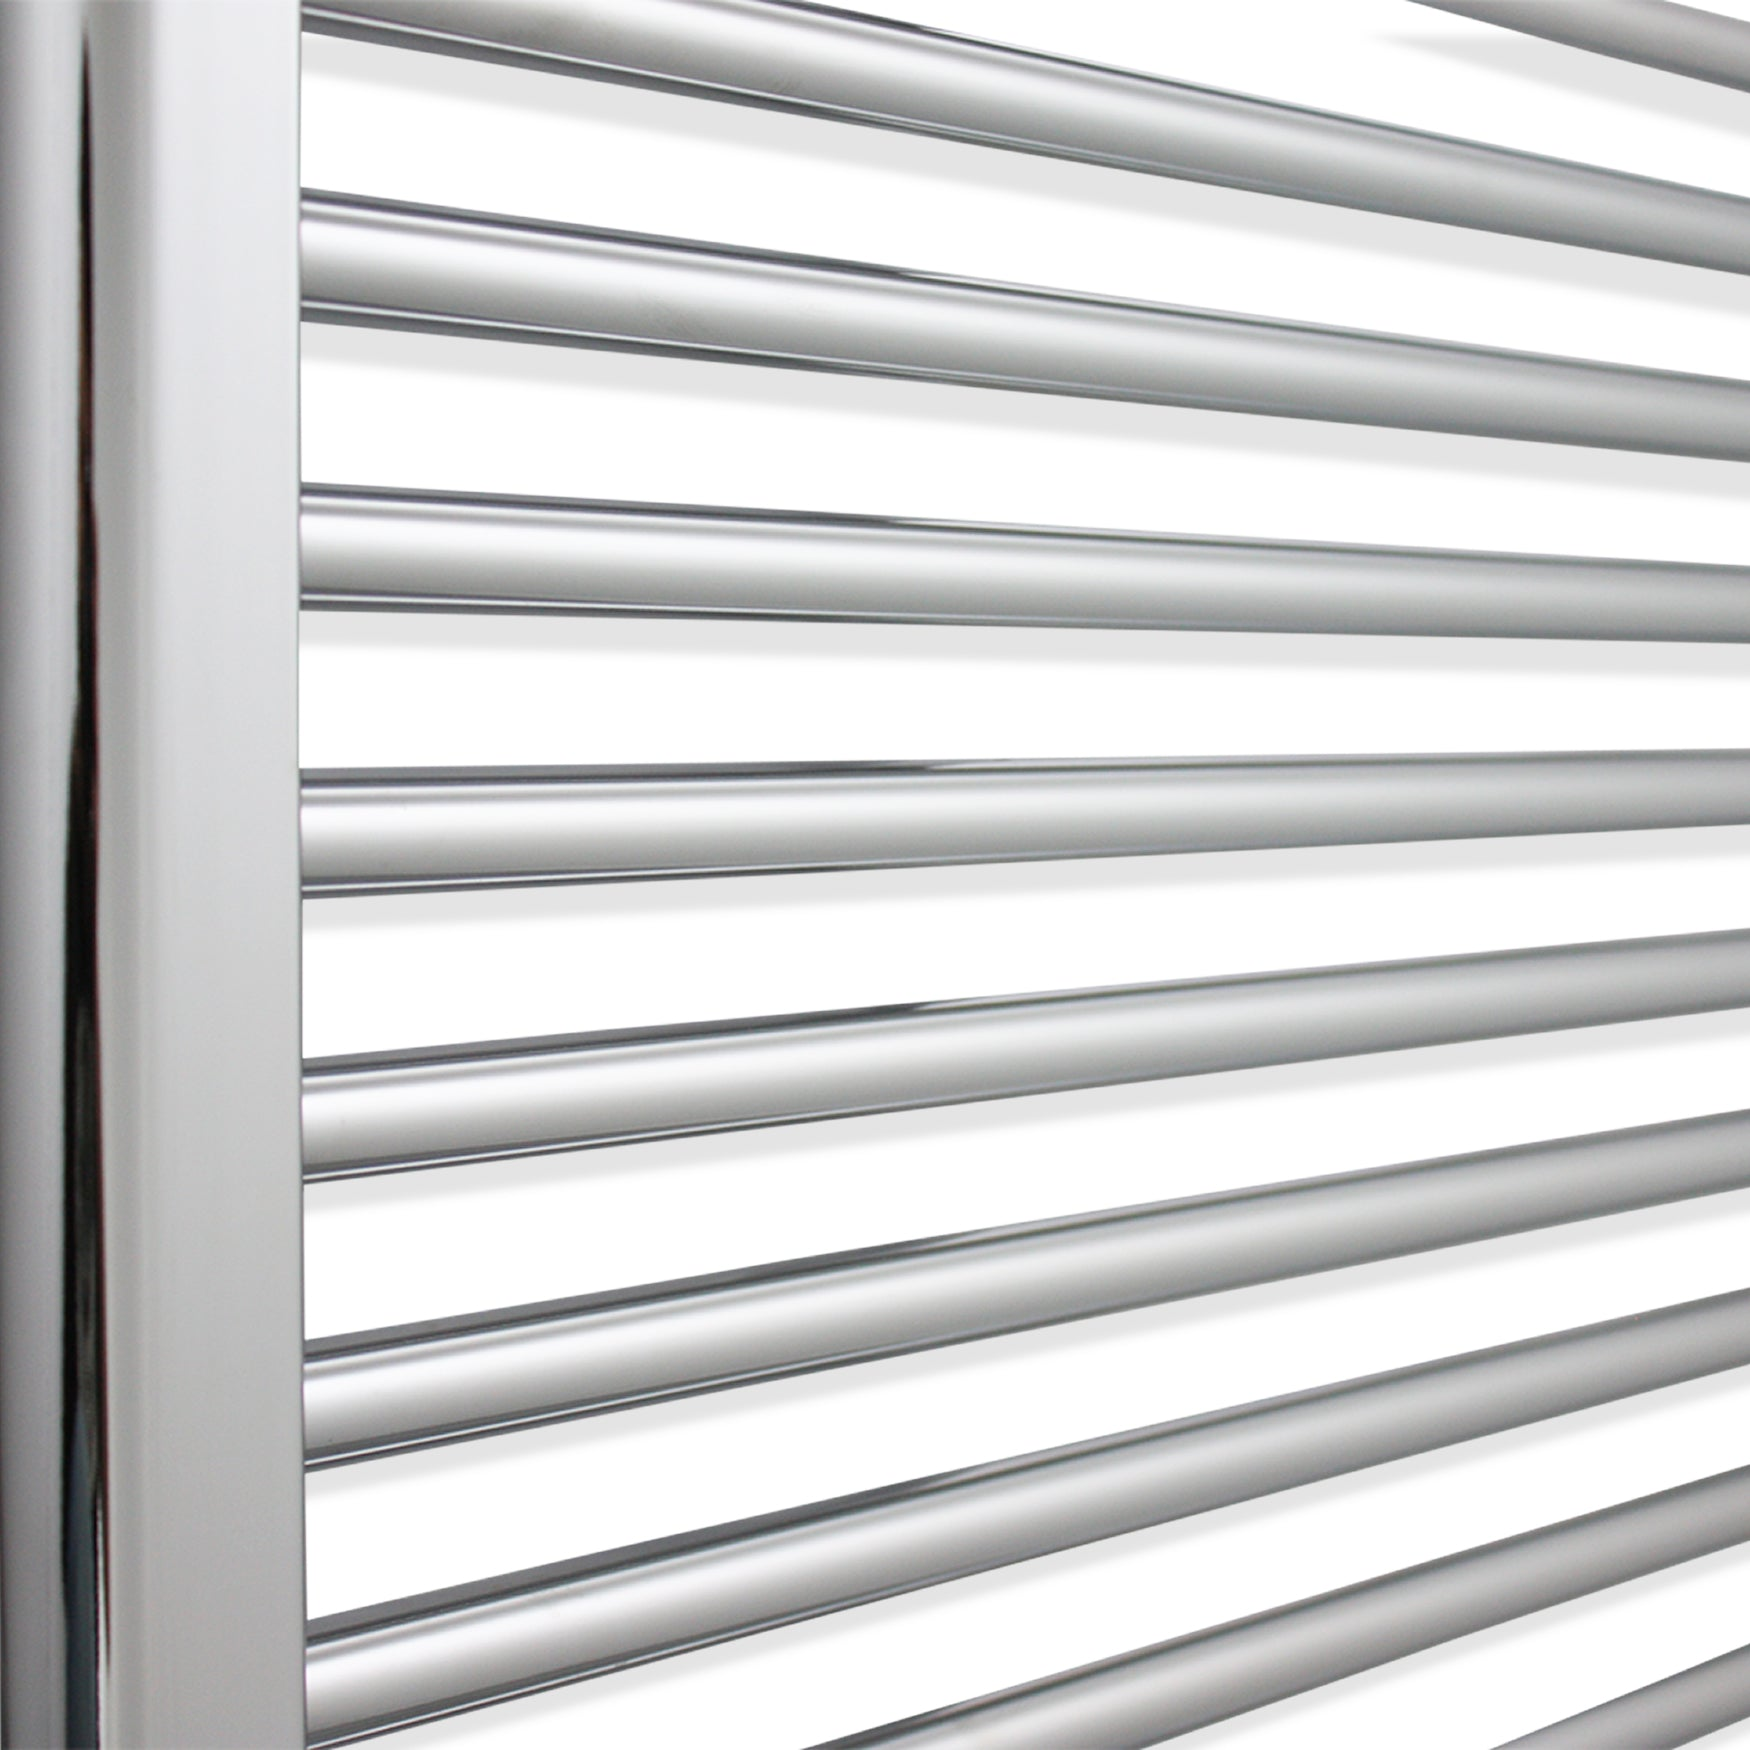 300mm Wide 1400mm High Flat Chrome Heated Towel Rail Radiator